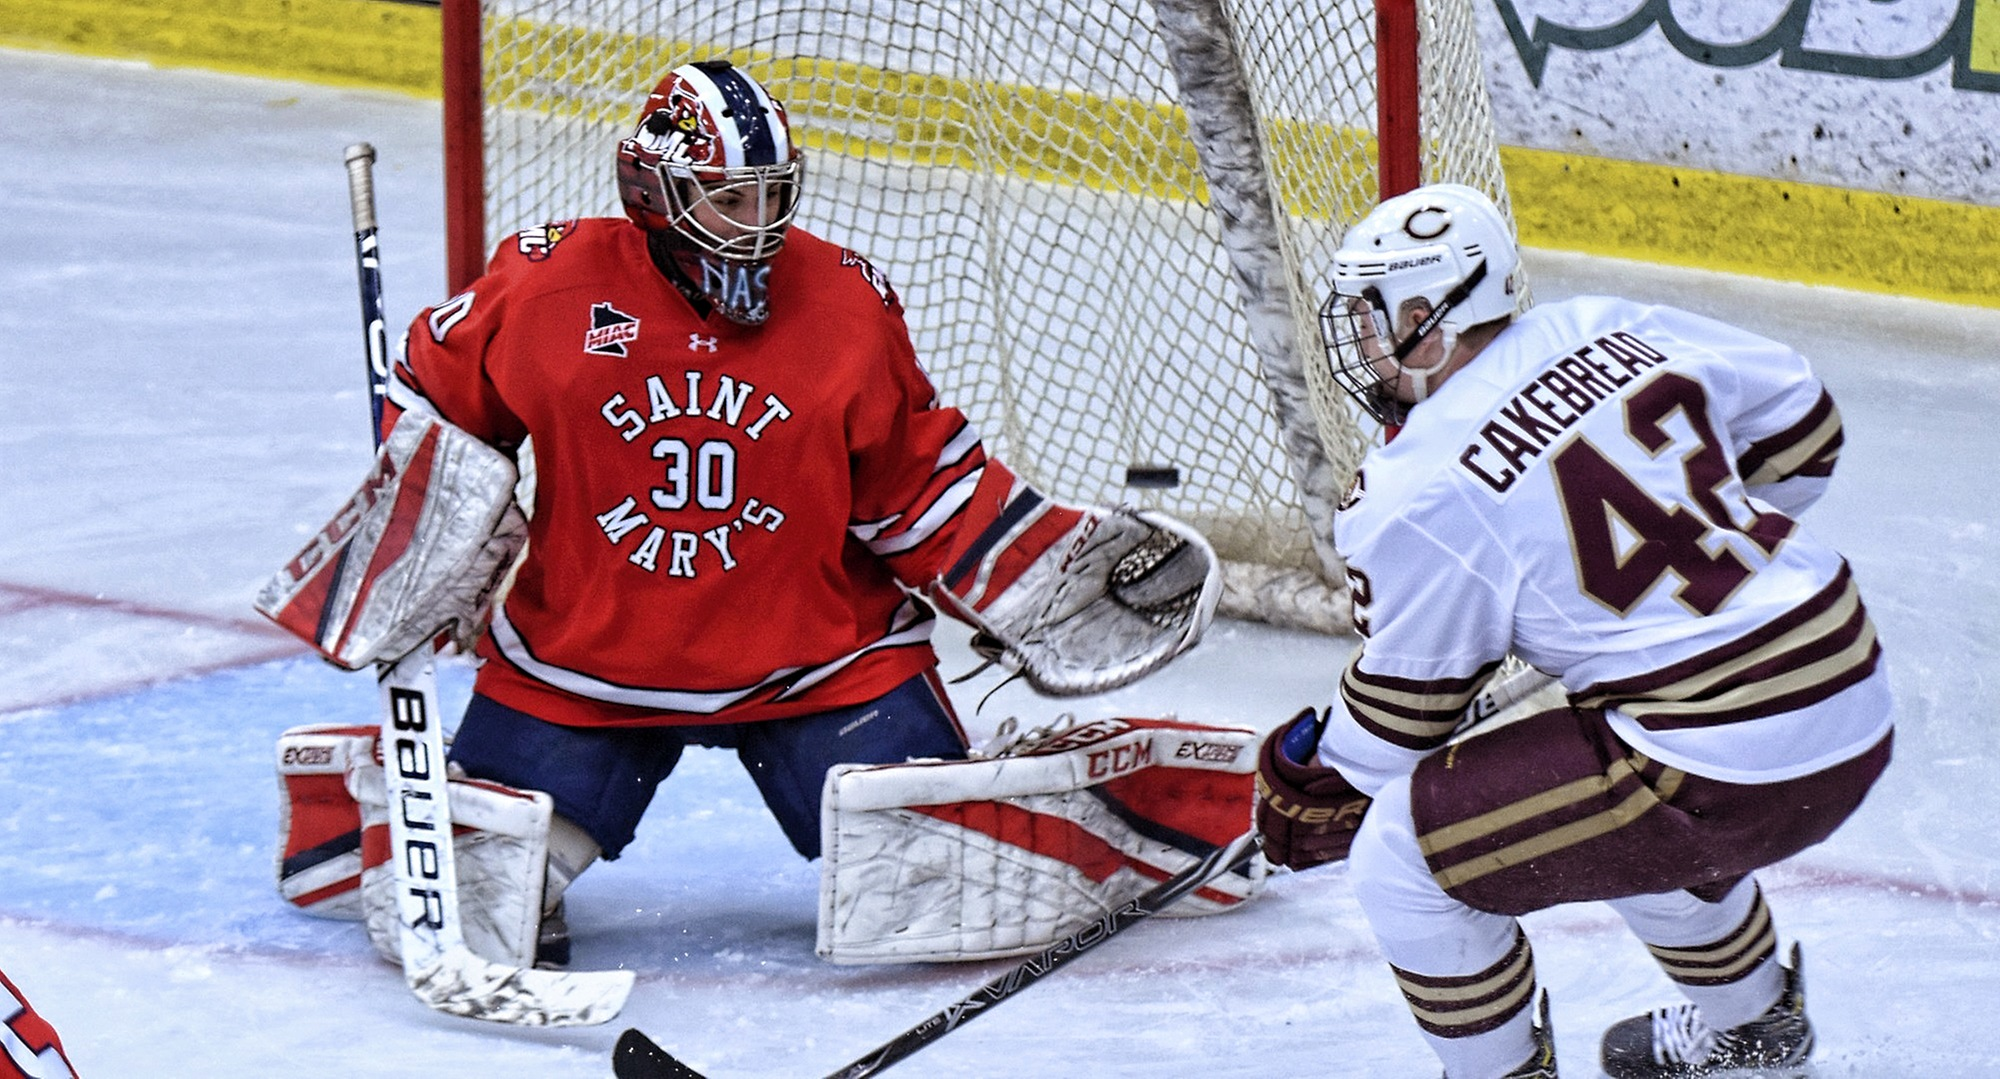 Junior Christian Cakebread watches Alex Stoley's shot elude the St. Mary's goalie to give the Cobbers a 2-1 lead in the third period of the MIAC opener.